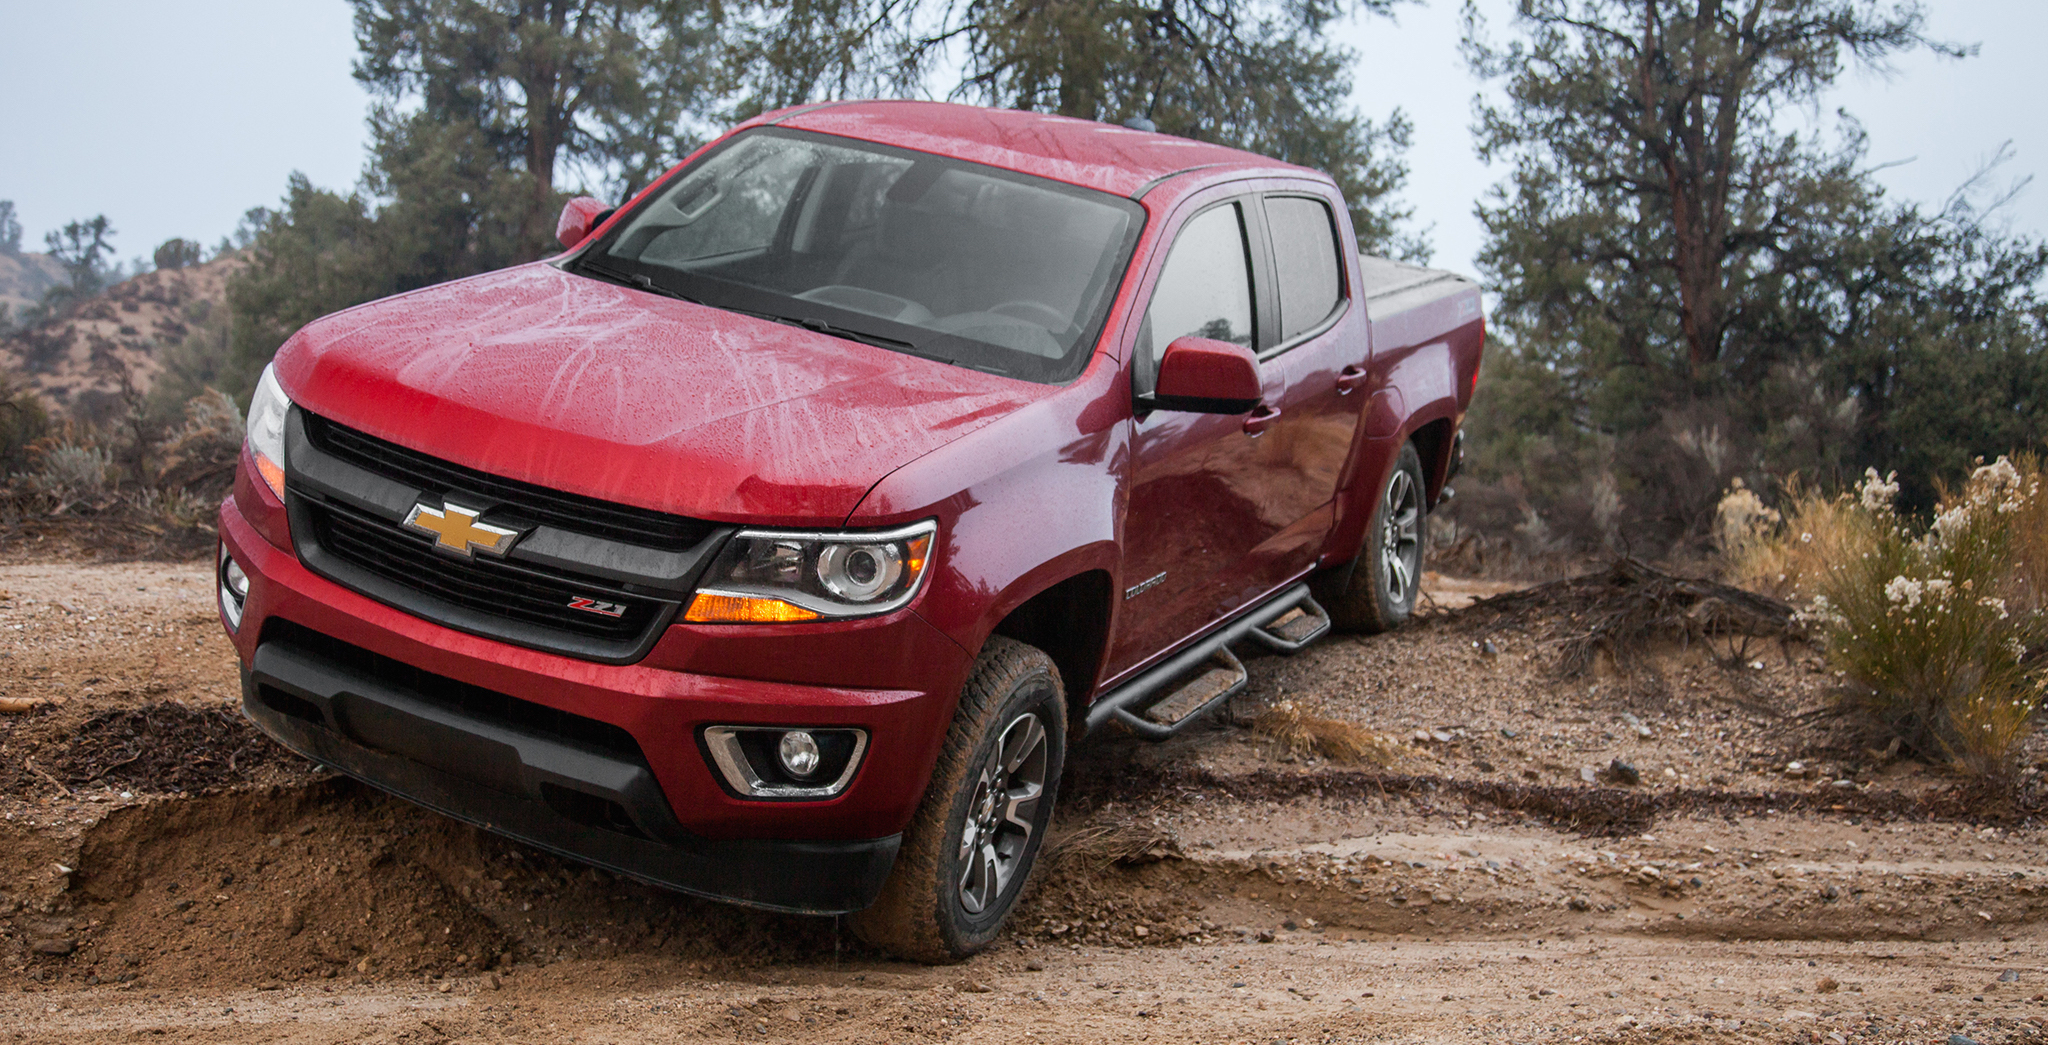 Chevy Colorado Crowned Midsize Master Not Being Dethroned Anytime